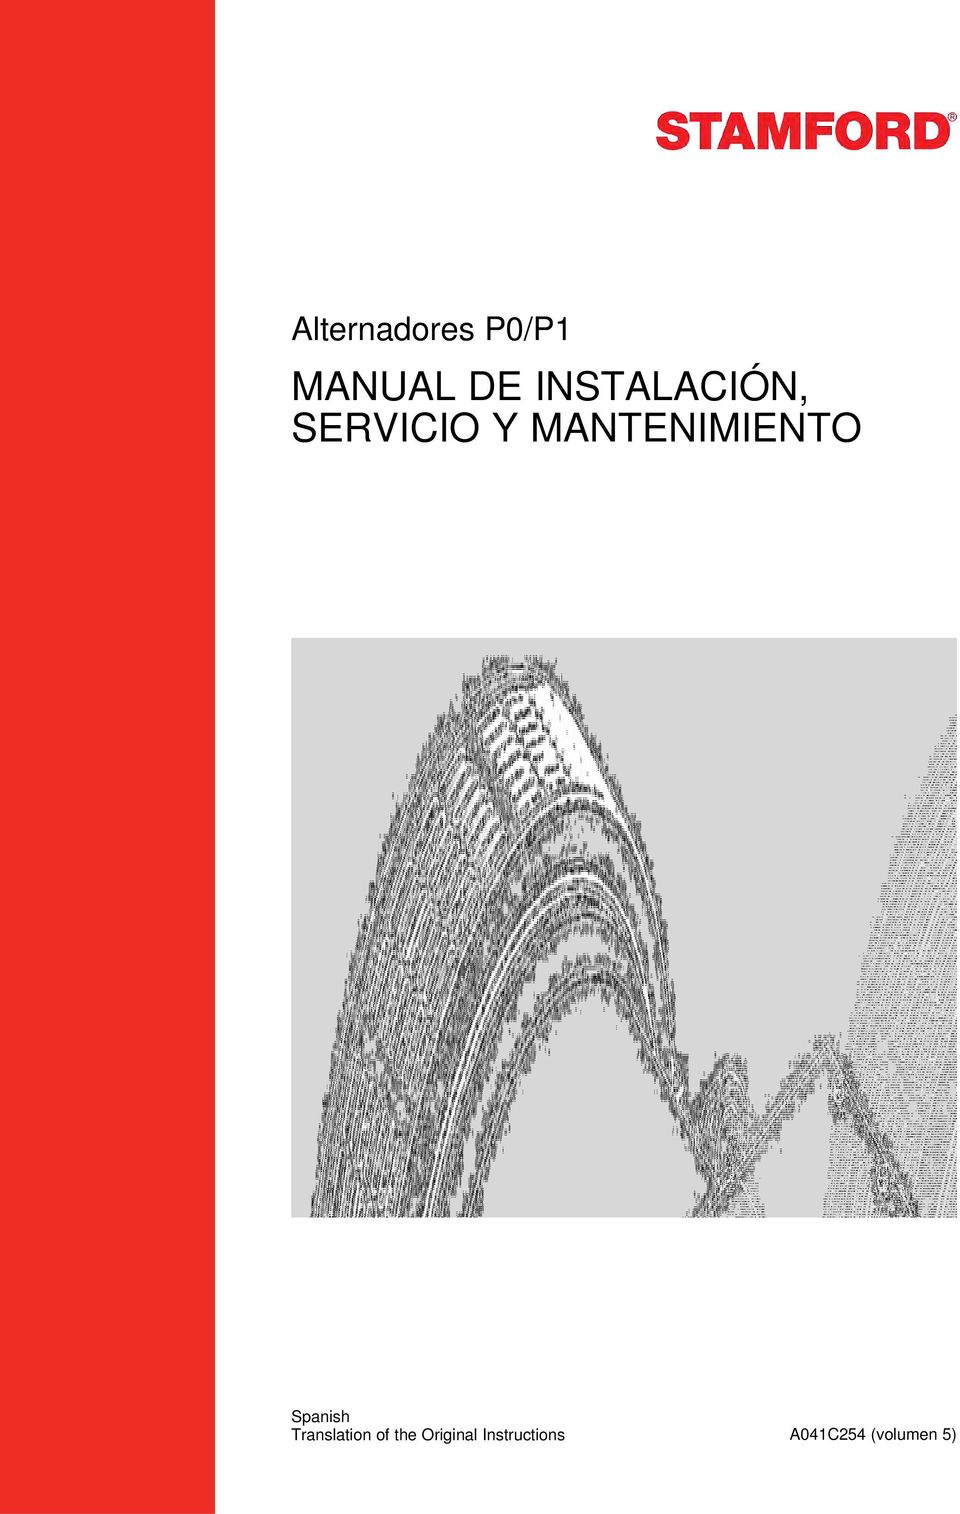 MANTENIMIENTO Spanish Translation